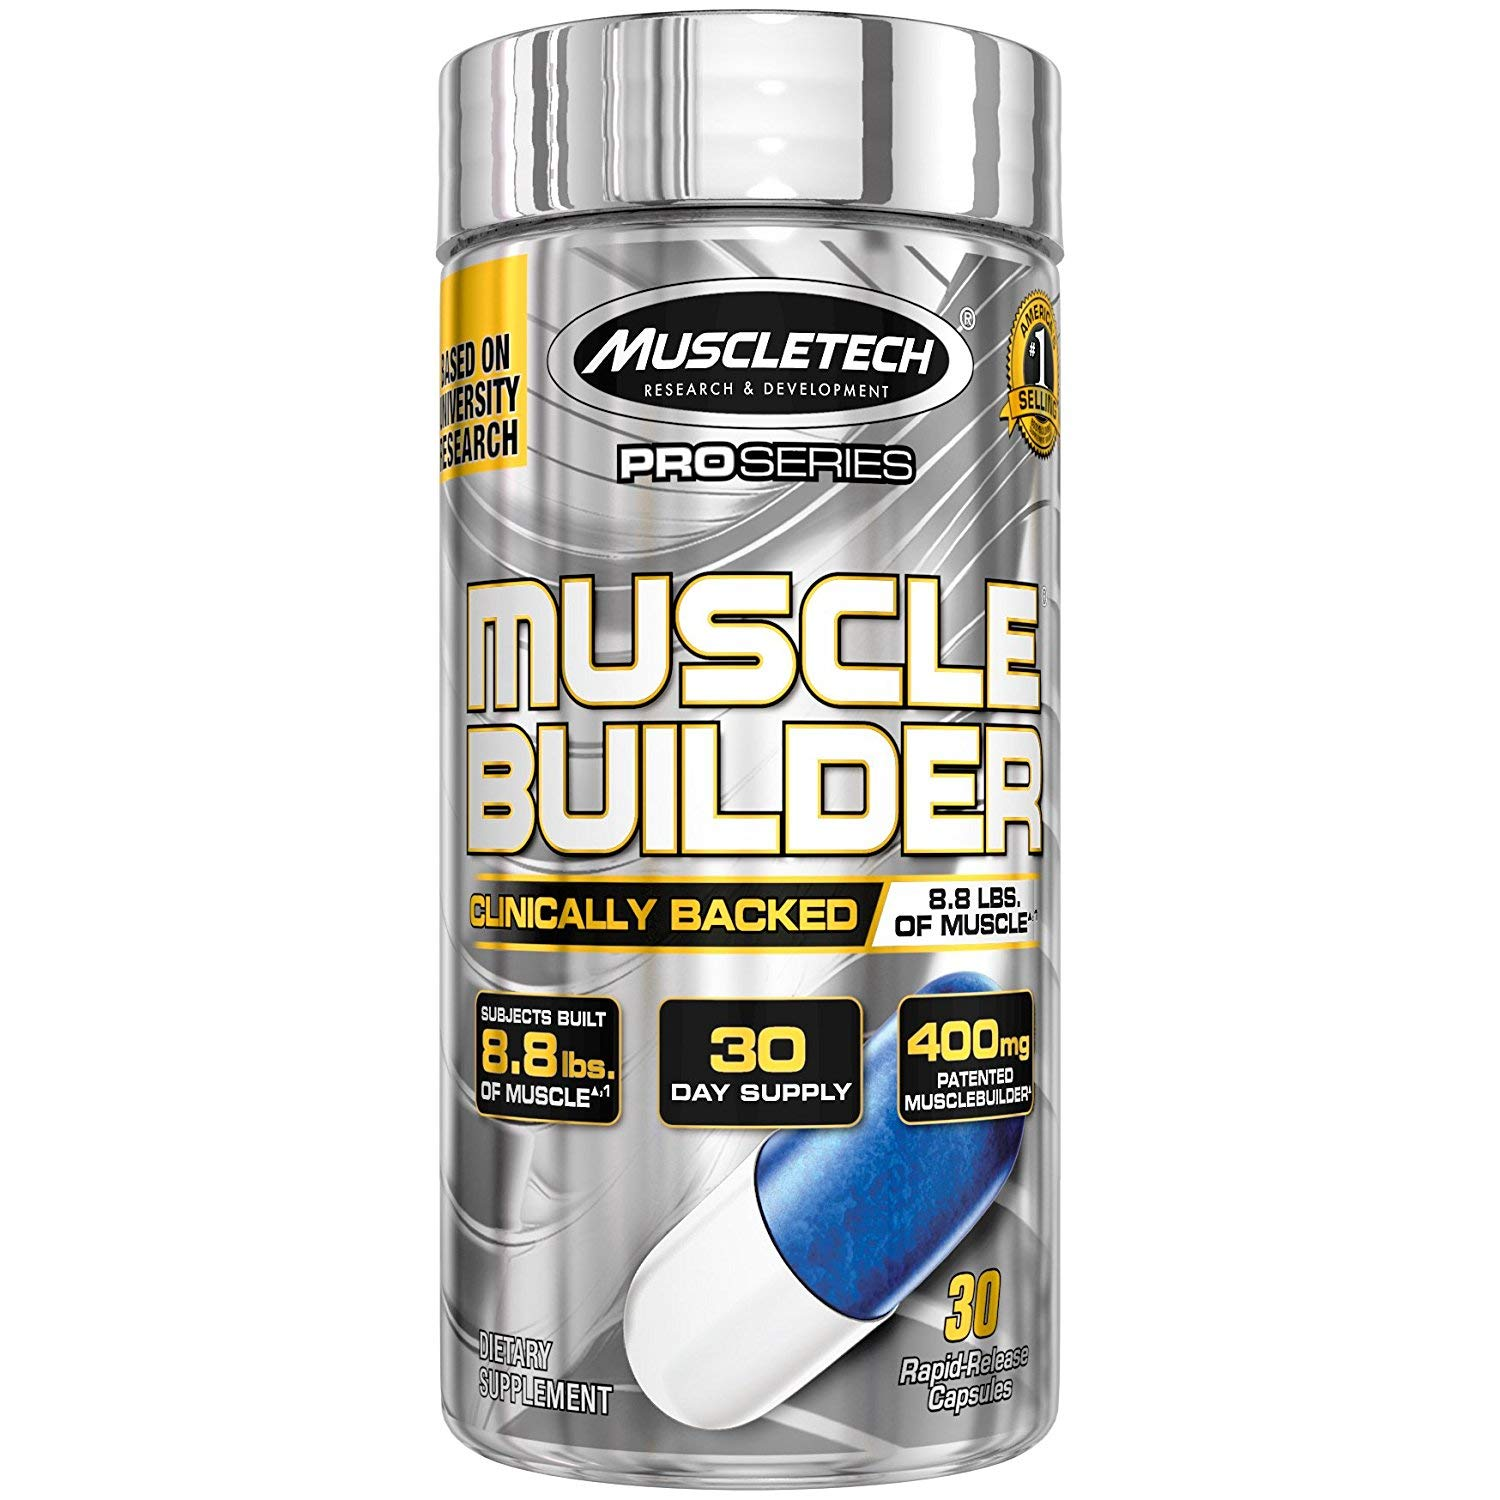 Muscle Builder | MuscleTech Muscle Builder | Muscle Building Supplements for Men & Women | Nitric Oxide Booster | Muscle Gainer Workout Supplement | 400mg of Peak ATP for Enhanced Strength, 30 Pills